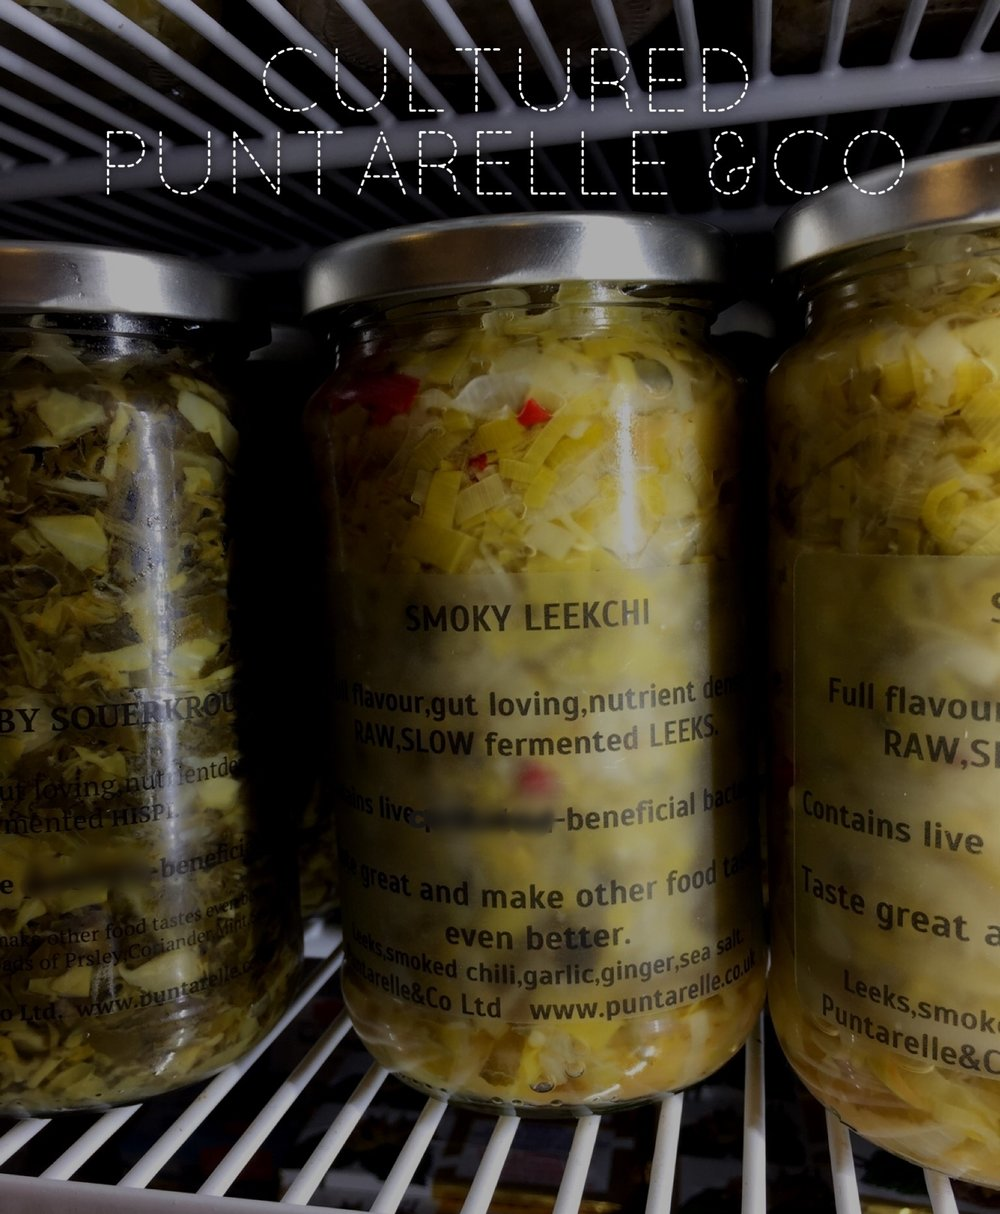 Smoky Leekchi Ferments                                      Photo ©Puntarelle@Co    NEW on our shelves:   Focusing on our  Fermented Vegetables    range this month we have 'Smoky Leekchi', a ferment of Leeks, smoked chilli, garlic and ginger.  Particularly delicious paired with dishes involving chicken or pulses.